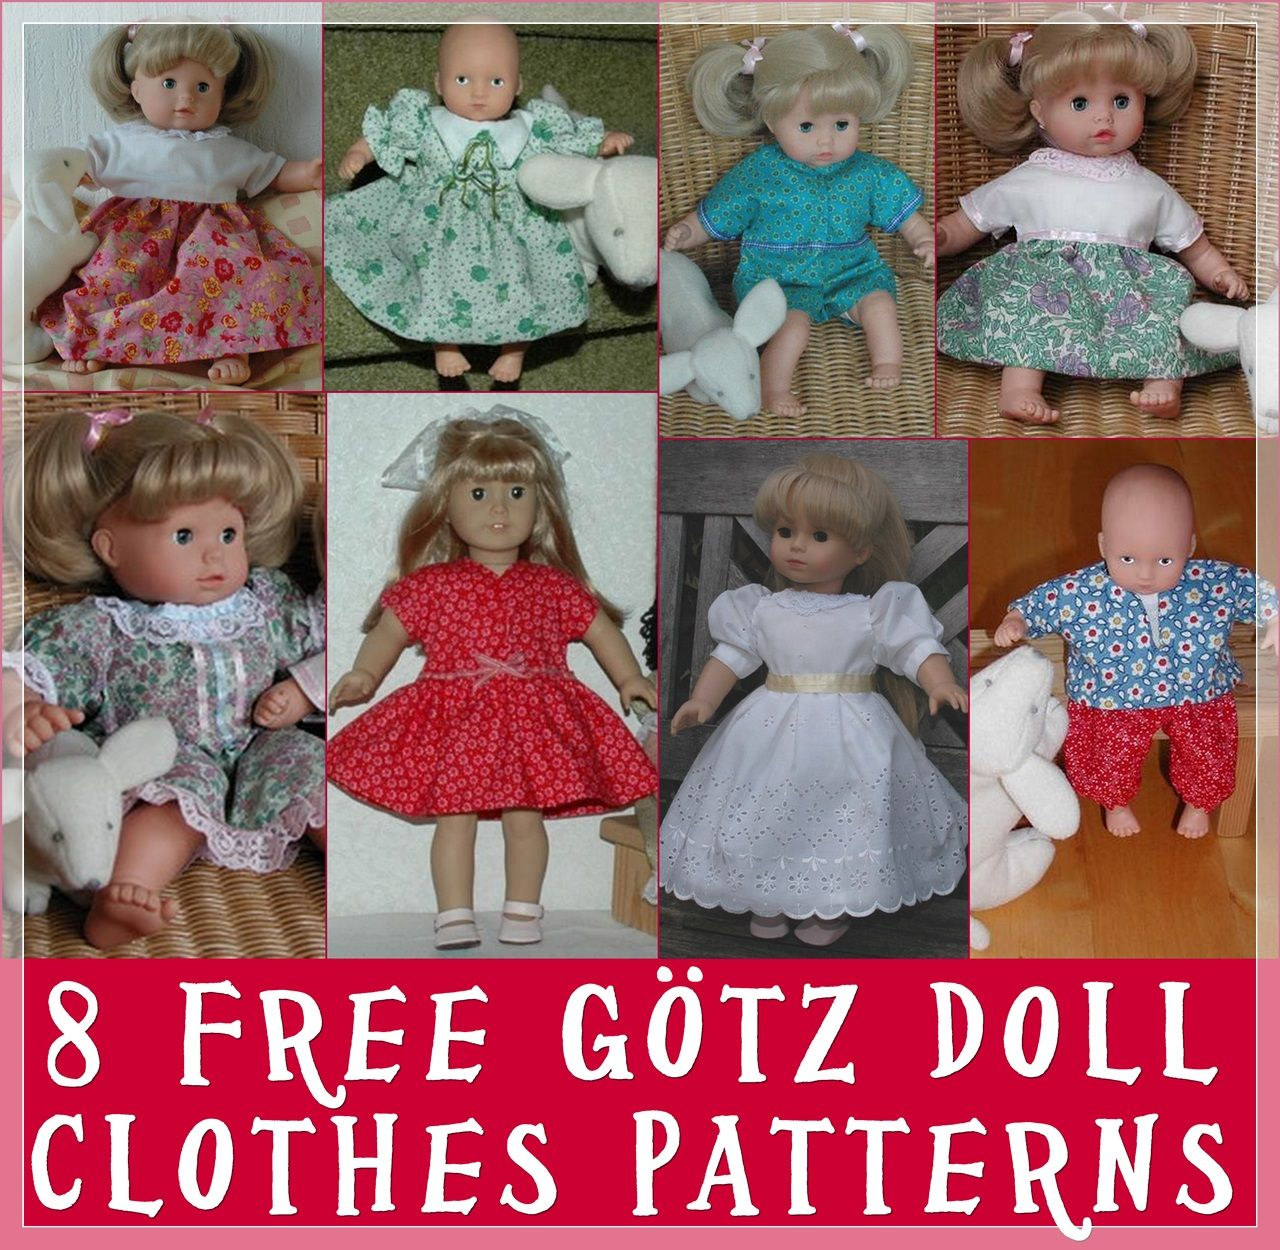 Make Your Own Gotz Dolls Clothes With These Free Easy Patterns